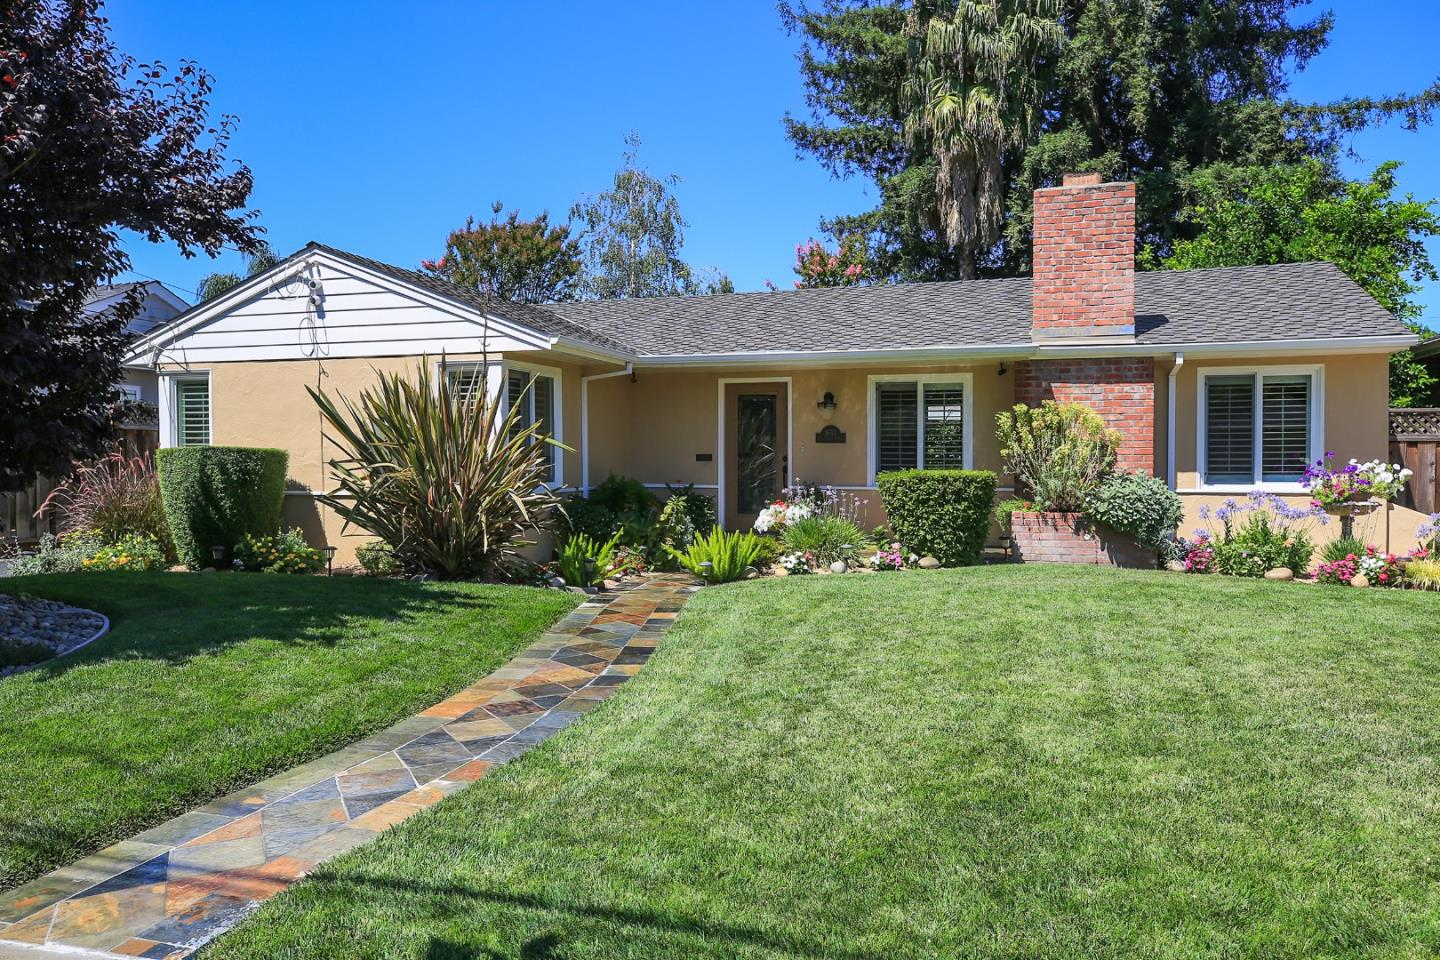 Additional photo for property listing at 1653 Collingwood Avenue  San Jose, California 95125 United States